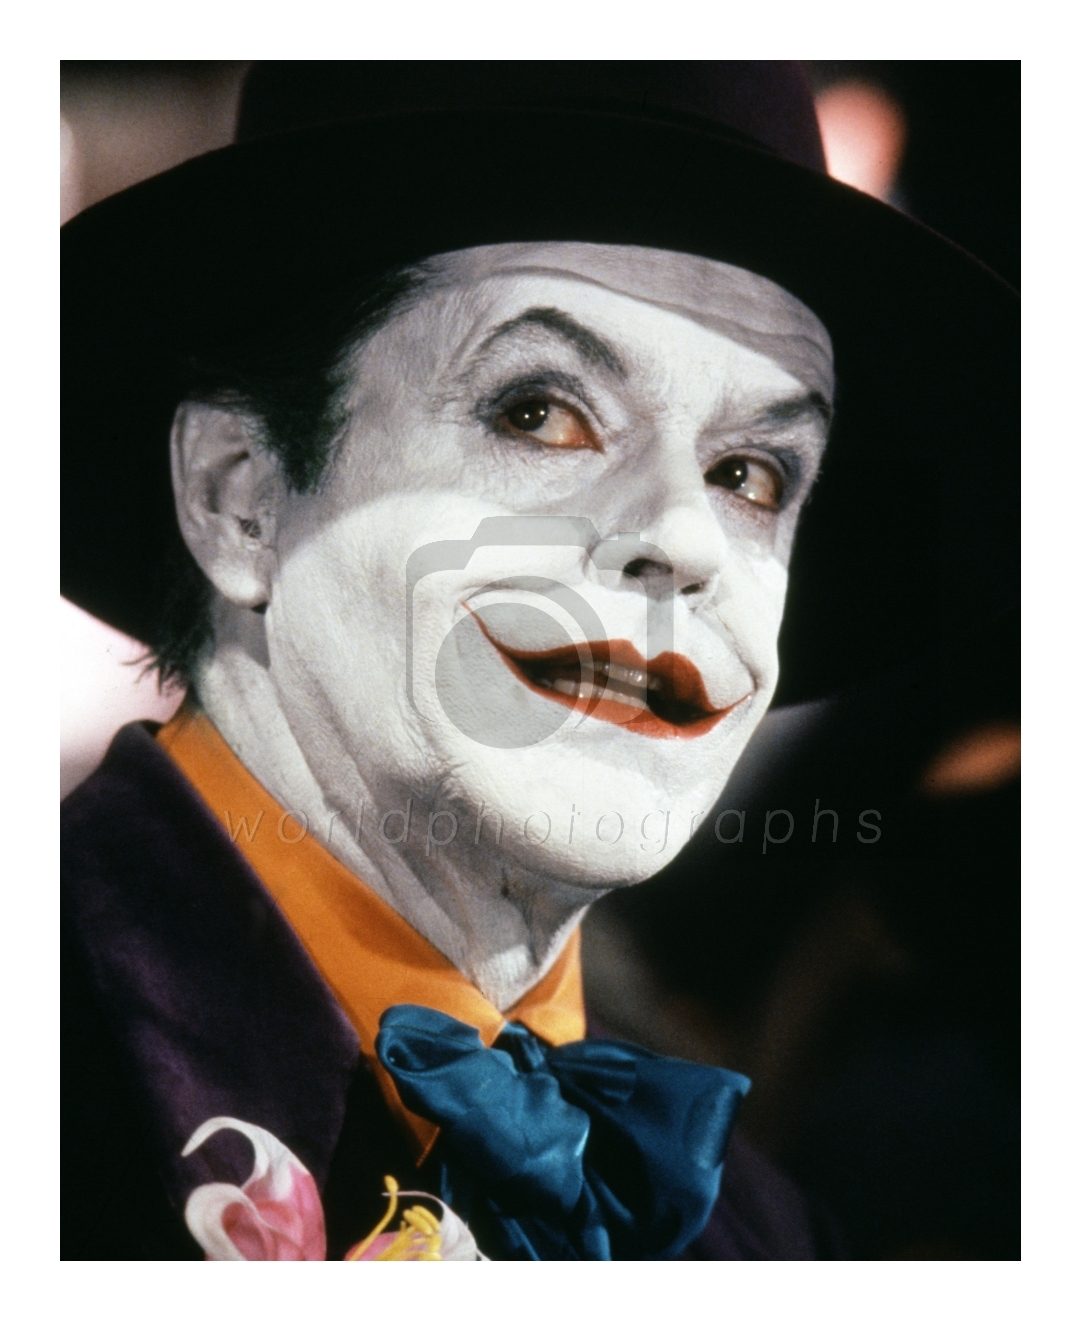 Batman (1989) Jack Nicholson 10x8 Photo